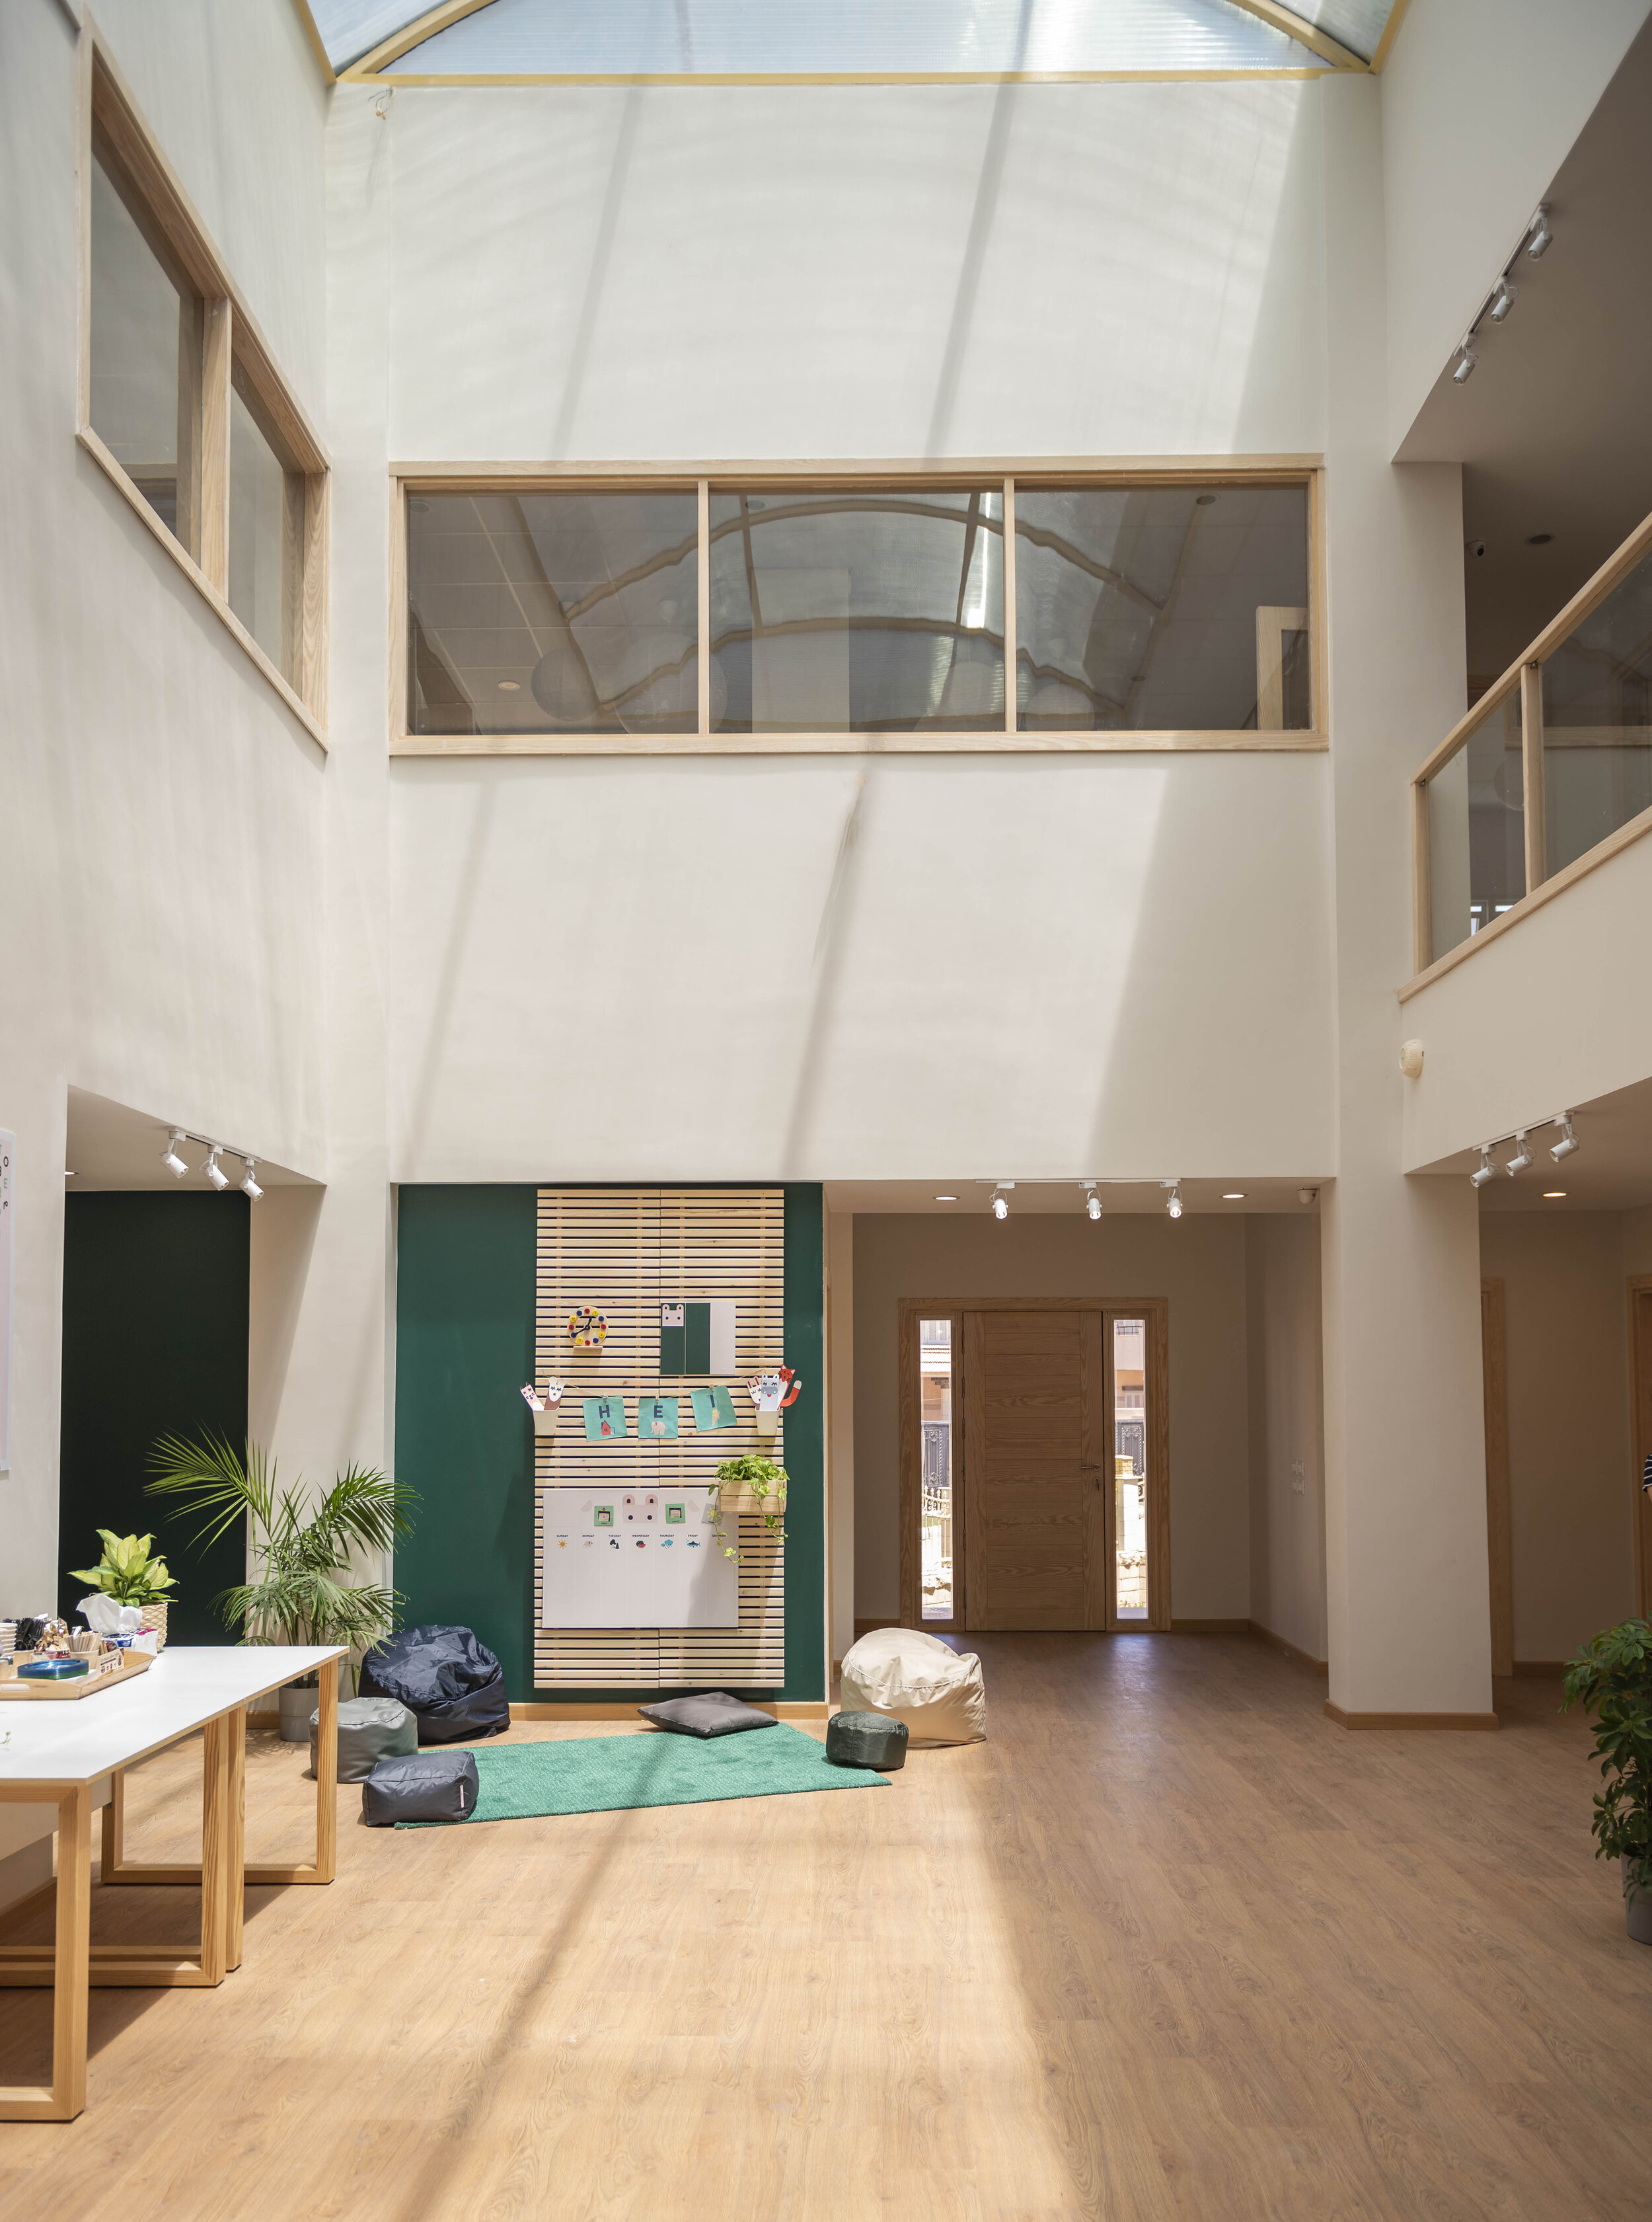 The four-story building follows HEI Schools' Nordic design with plenty of natural light and high-quality materials, inviting the children to concentrate on playing and learning in a visually calm and relaxing environment.